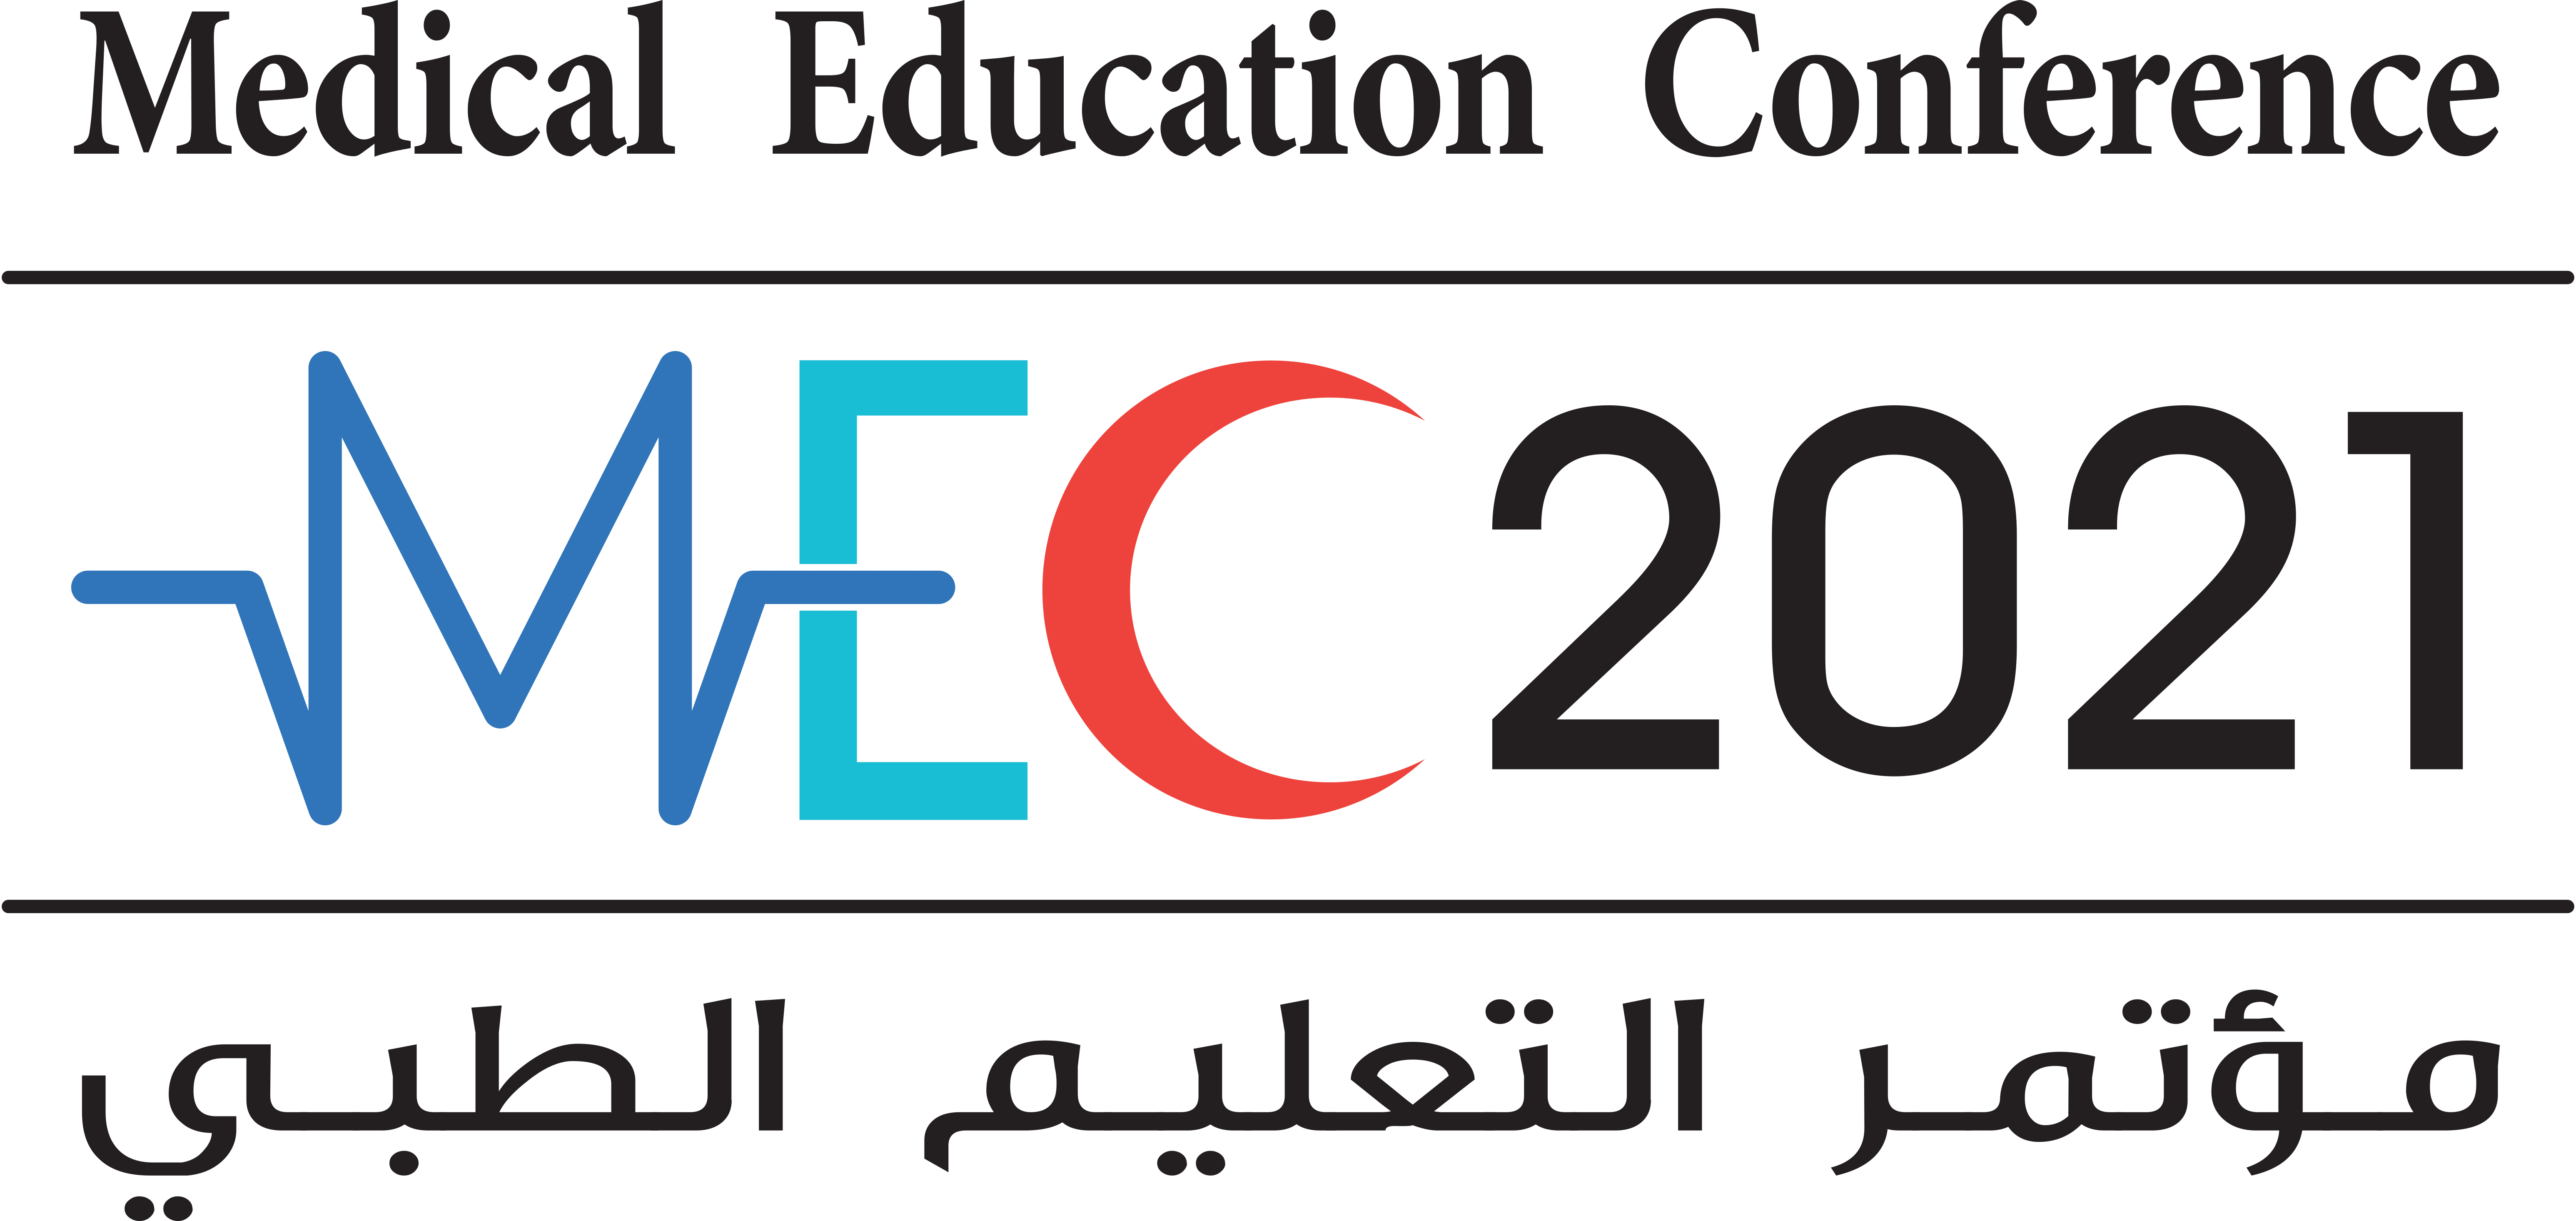 Medical Education Conference